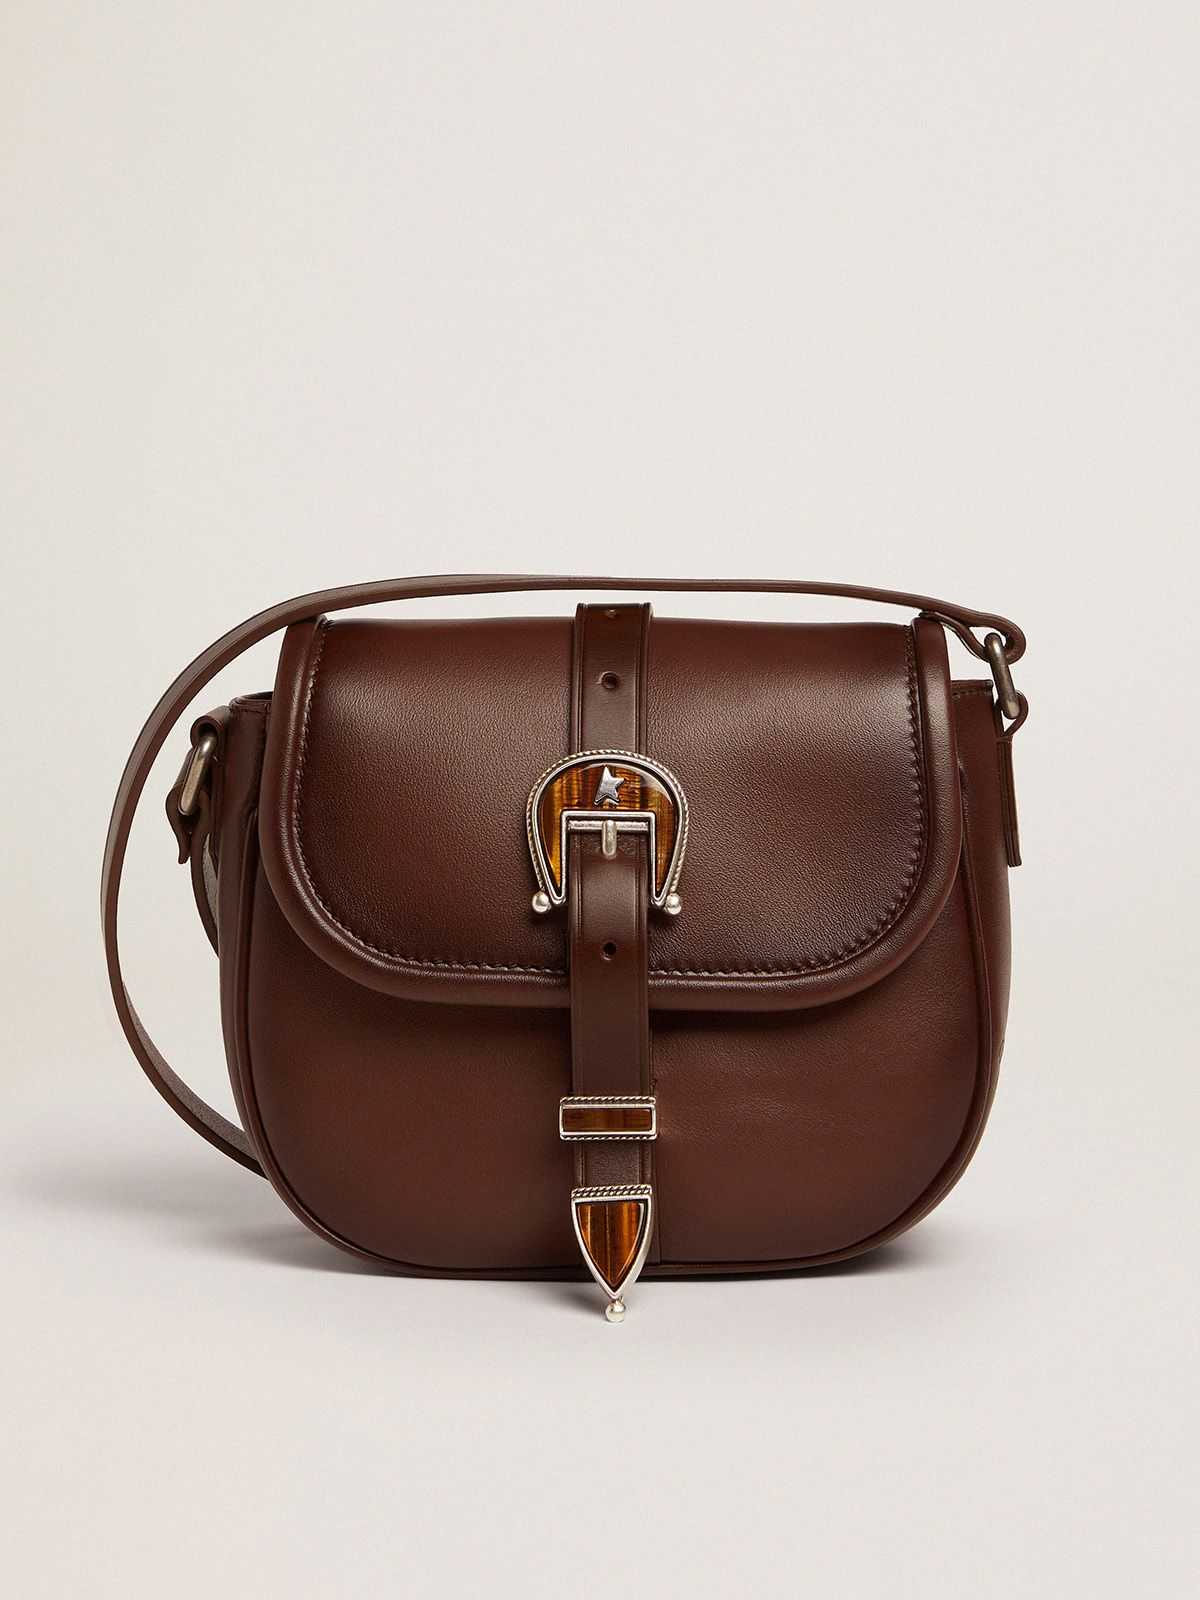 Small Rodeo Bag in dark tan leather